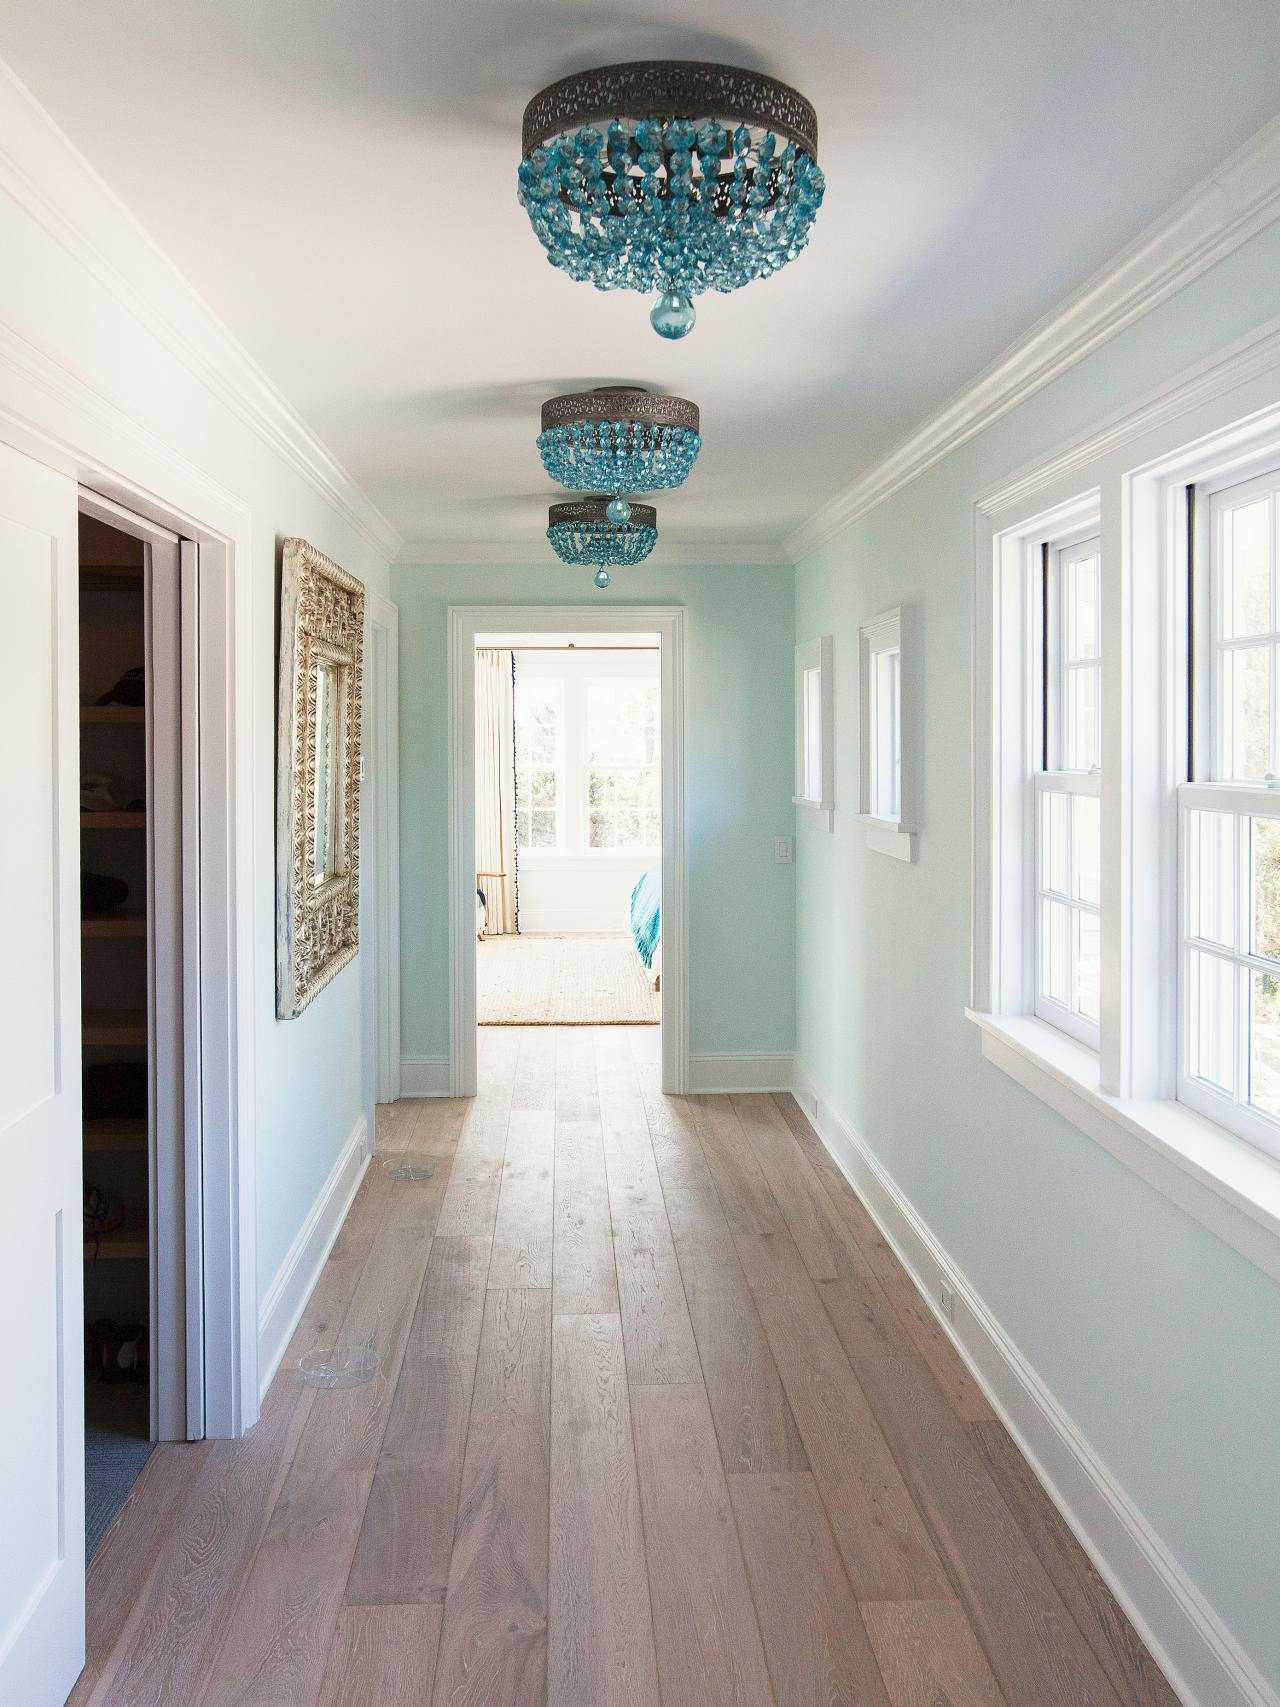 Interior Foyer Light With Black Copper Glass Lantern Chandelier Inside Chandeliers For Hallways (Image 13 of 15)